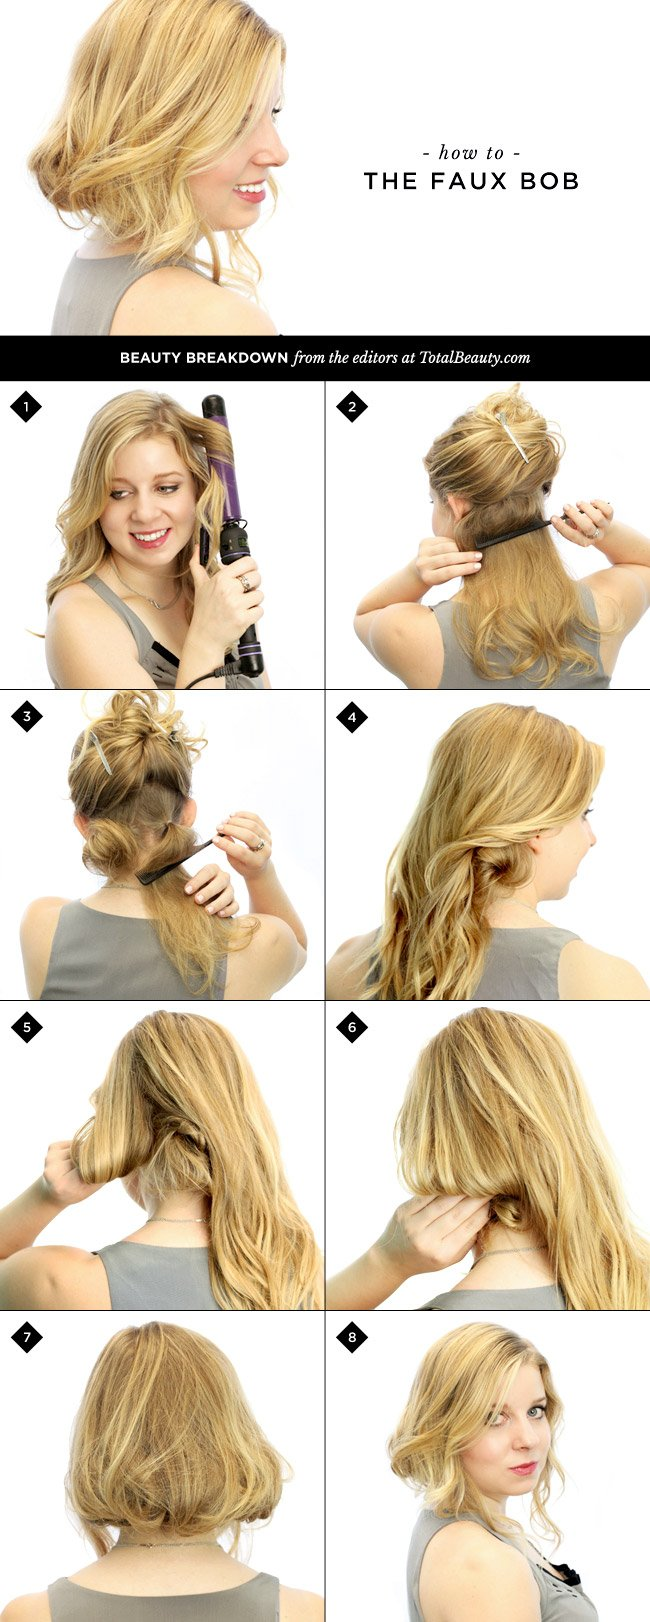 Hairstyles For Short Hair Diy : How to Do a Faux Bob in 8 Easy Steps